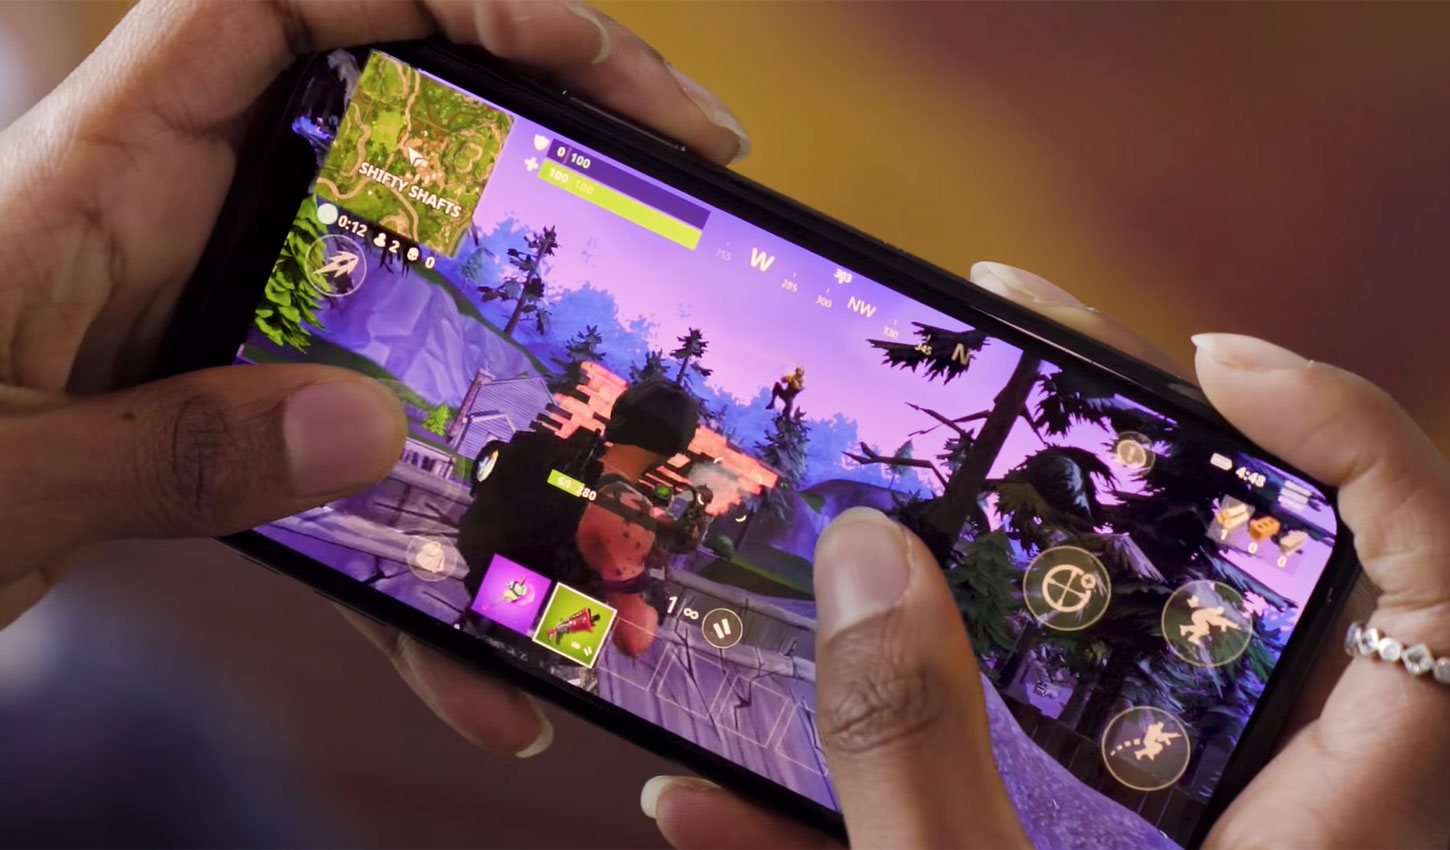 Here's where to sign up to get Fortnite for Android | TechCrunch